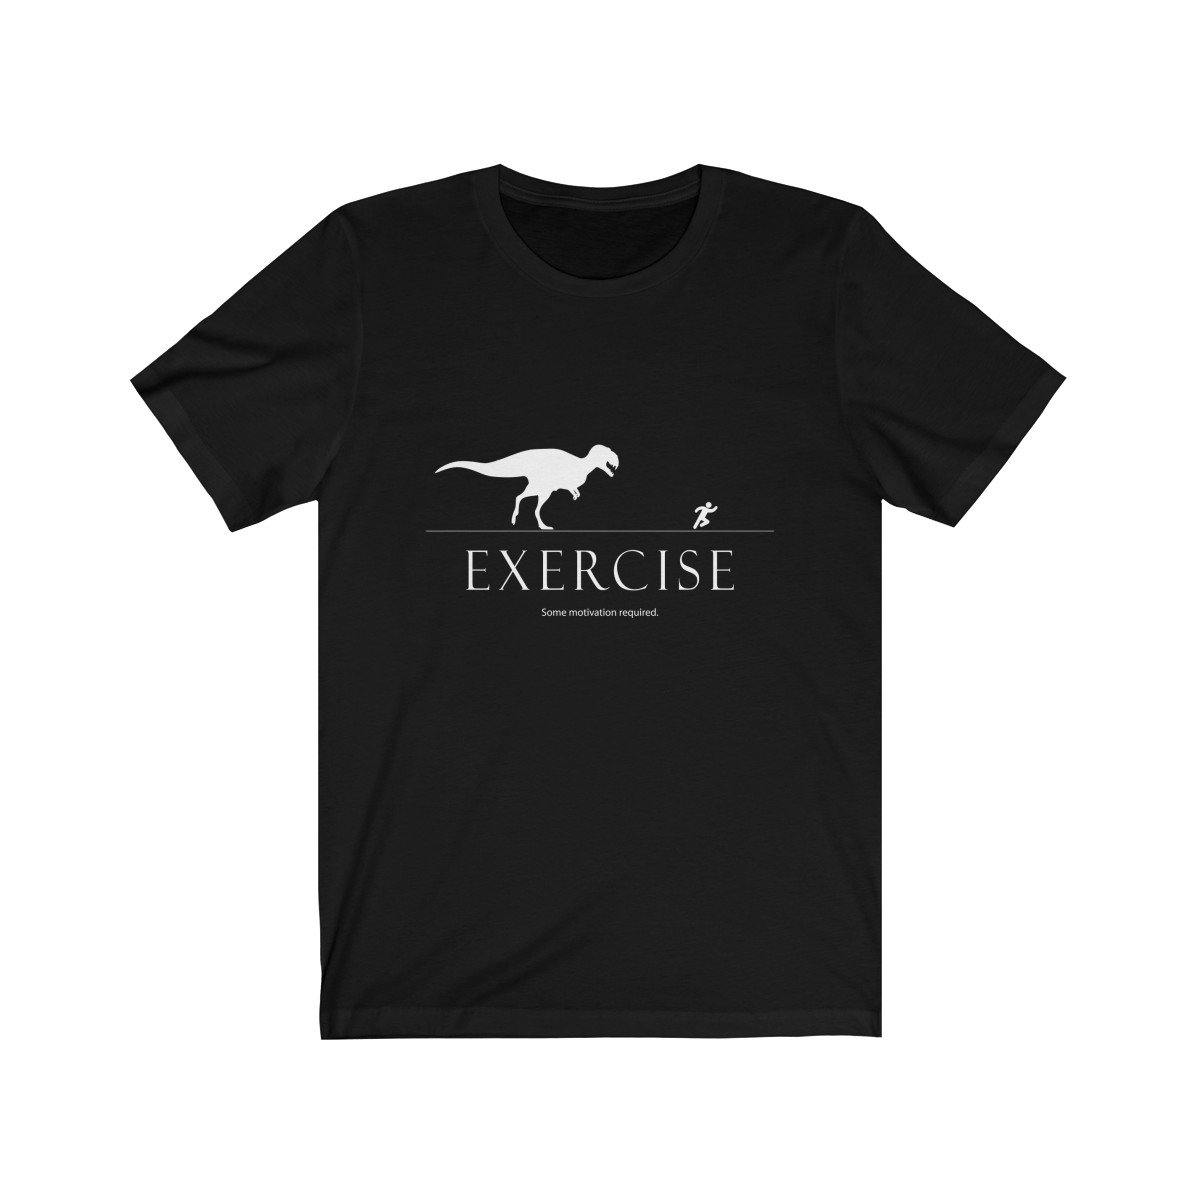 Exercise Tshirt